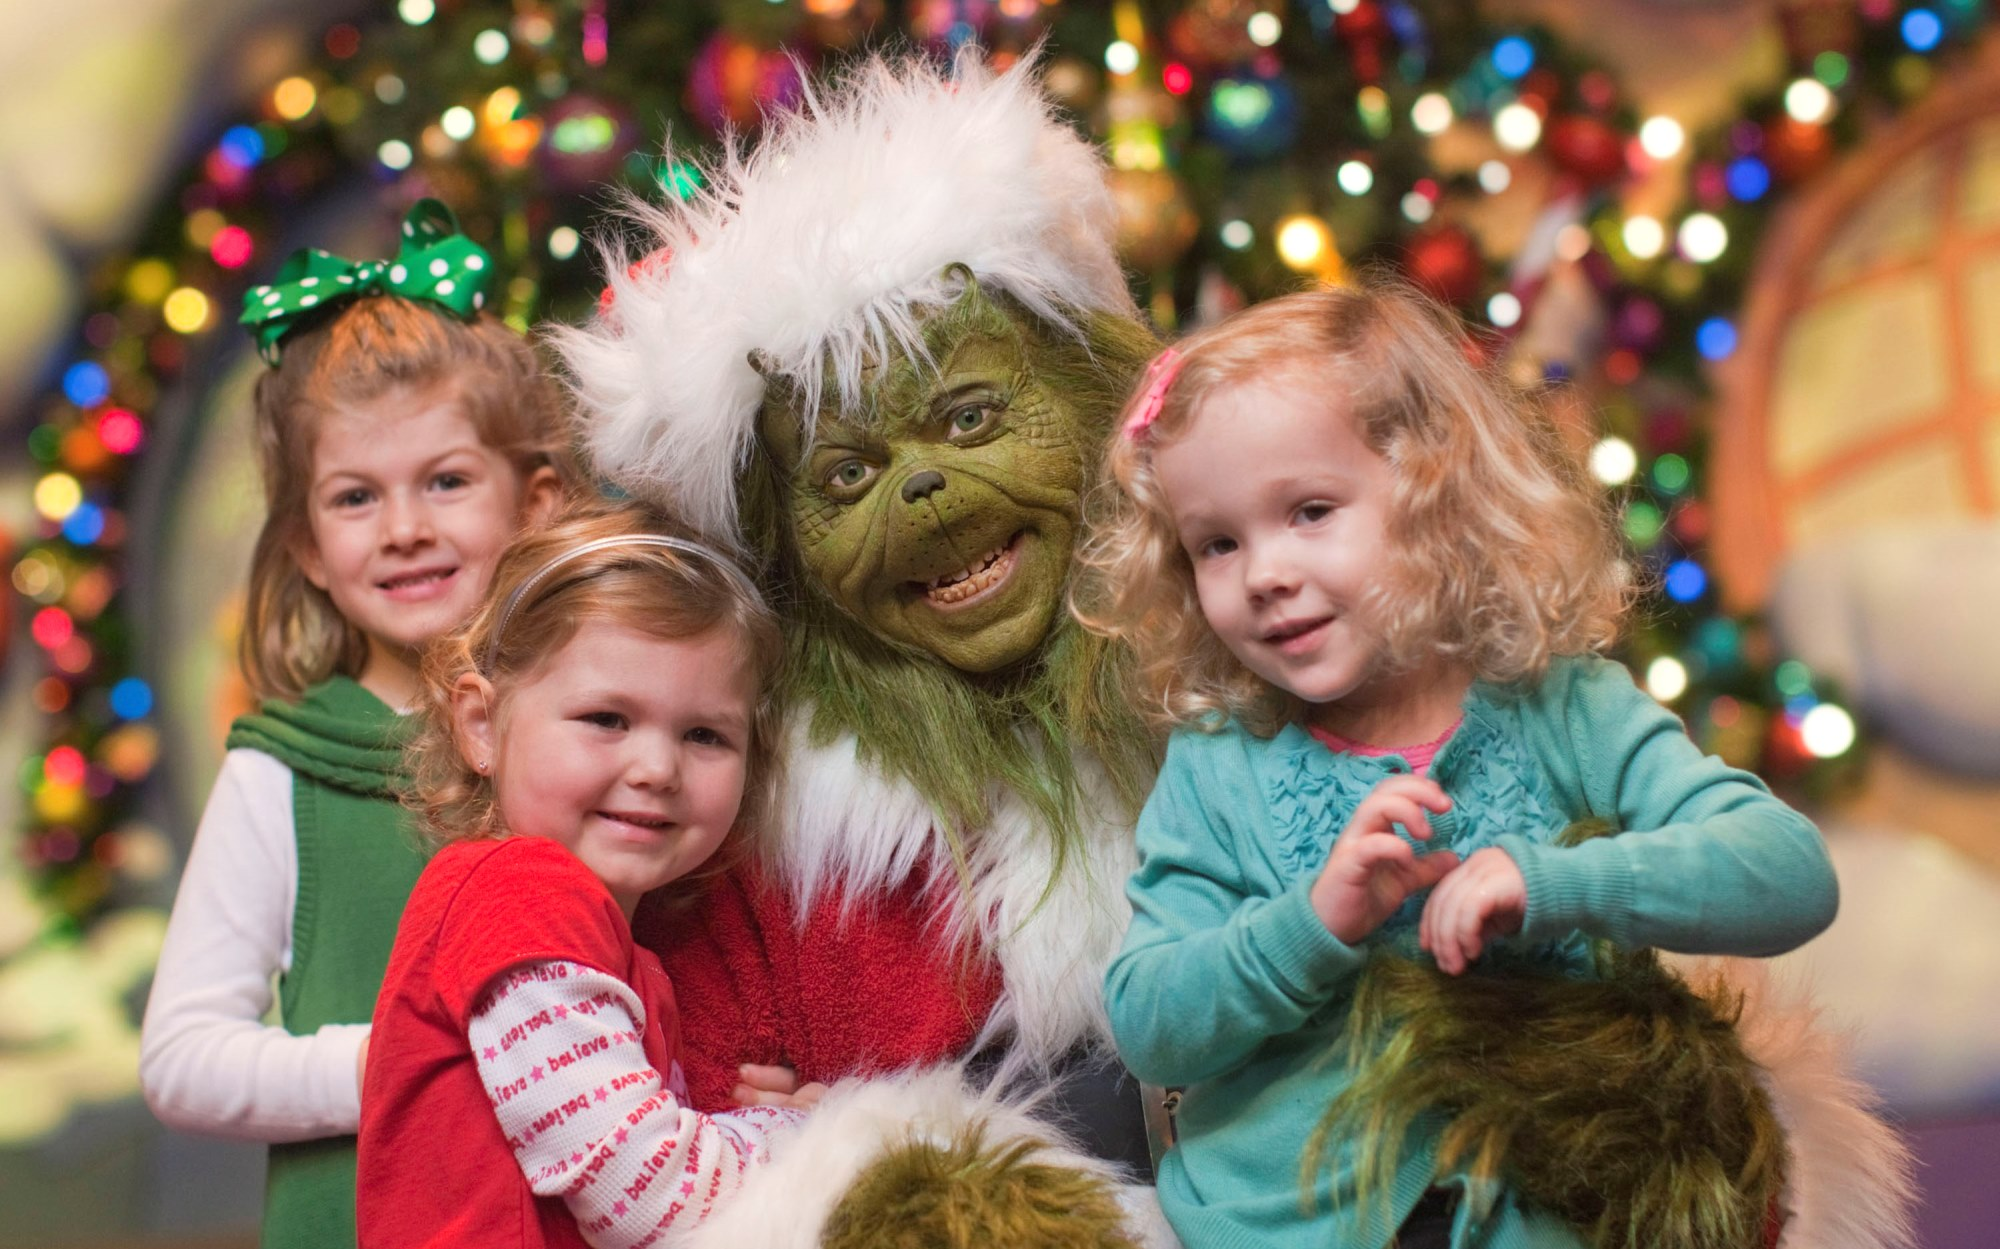 How The Grinch Stole Christmas Movie Characters.Celebrate The Holidays At Universal Orlando 2019 Guide